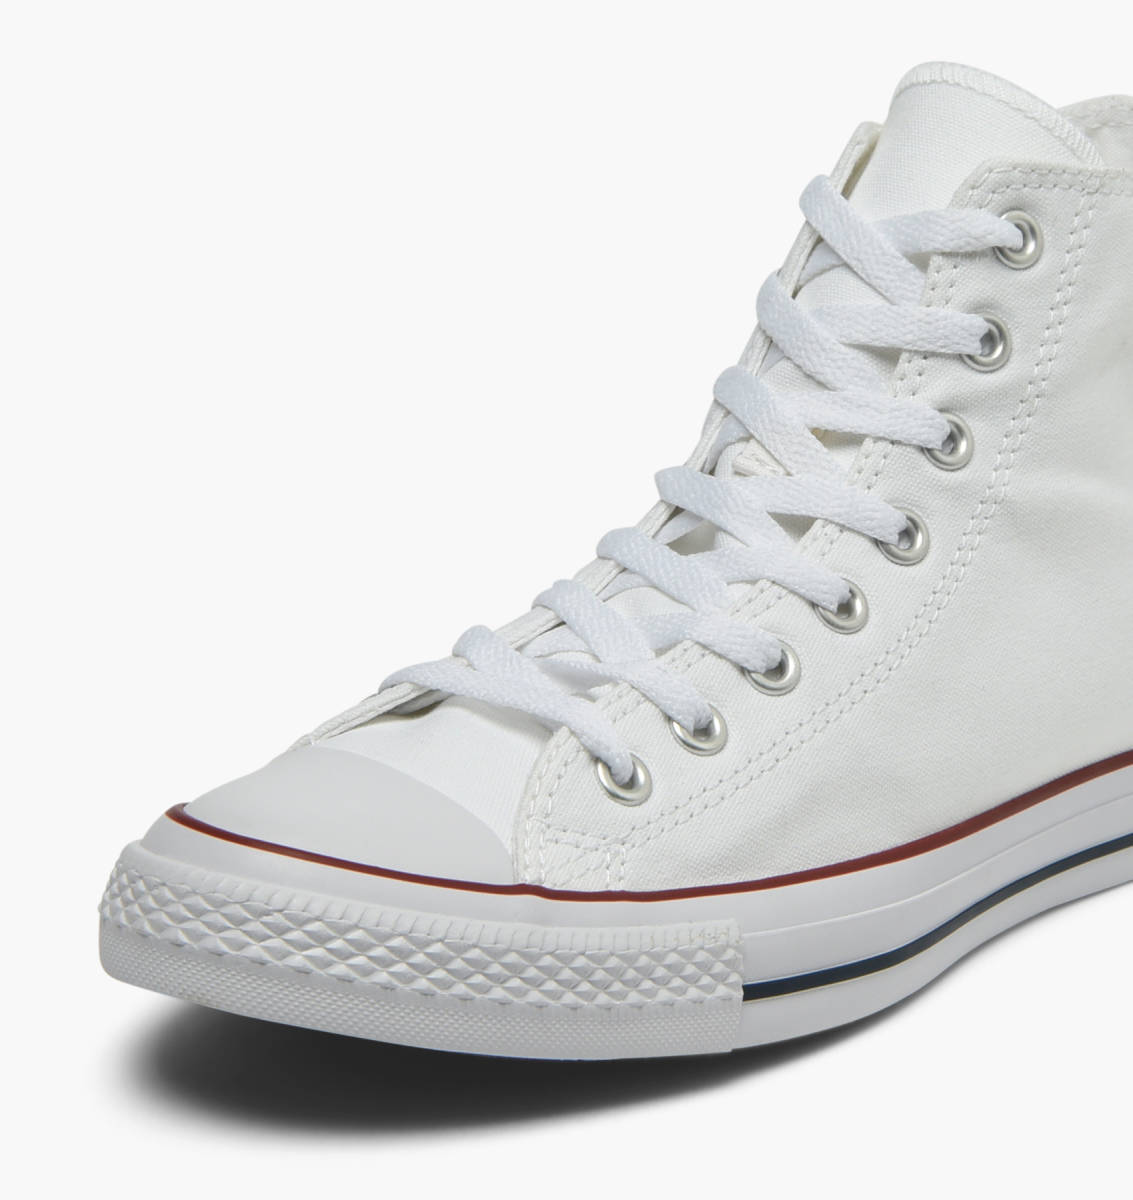 Converse Chuck Taylor All Star Hi in weiss M7650C | everysize